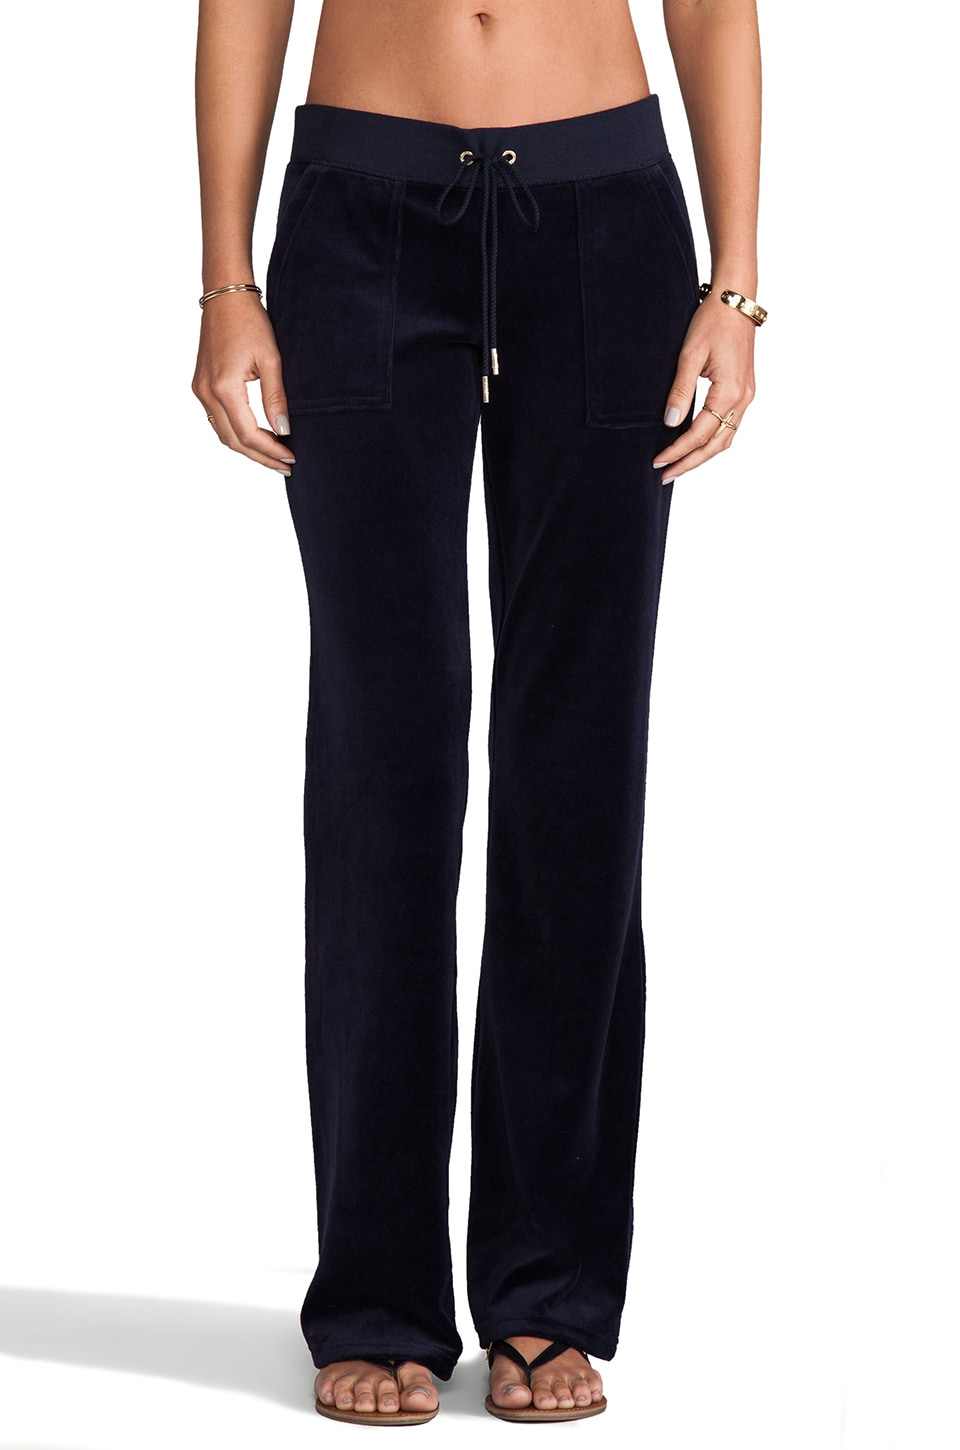 Juicy Couture J Bling Velour Bootcut Pant in Regal